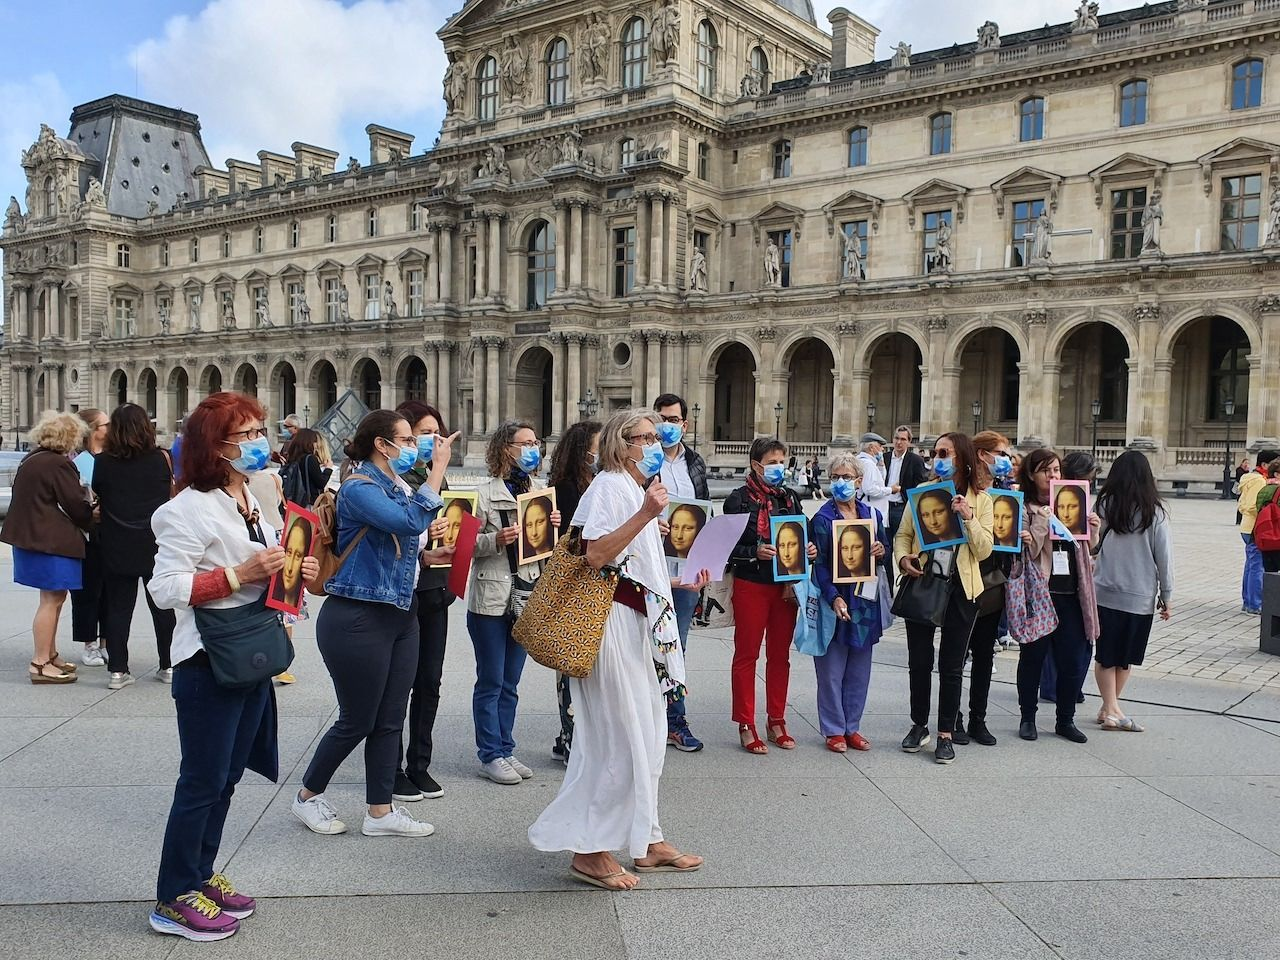 Tour guides protest in front of the louvre in Paris